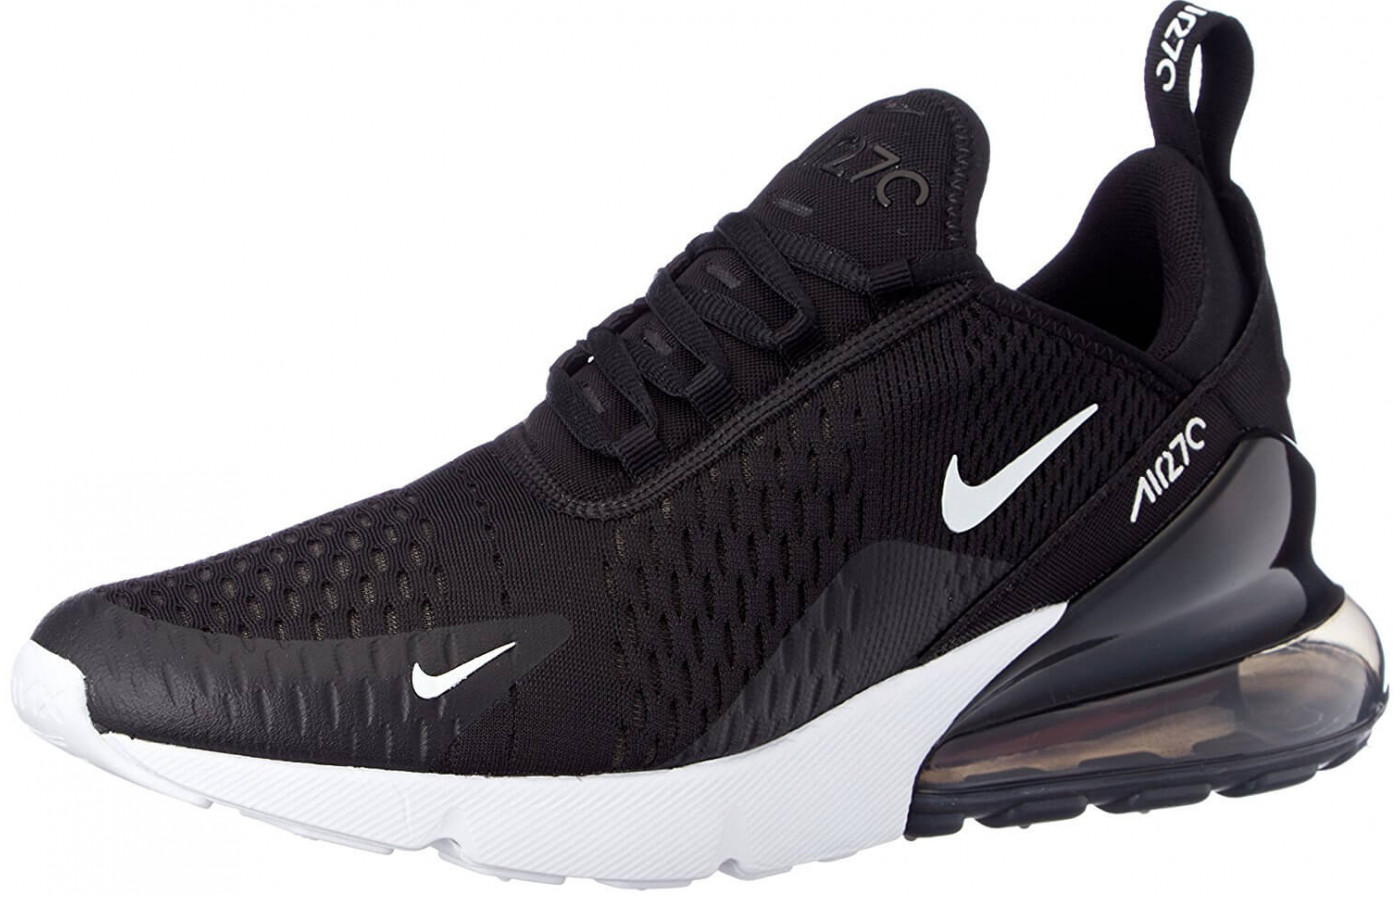 nike air max 270 reviewed to buy or not in sep 2019. Black Bedroom Furniture Sets. Home Design Ideas